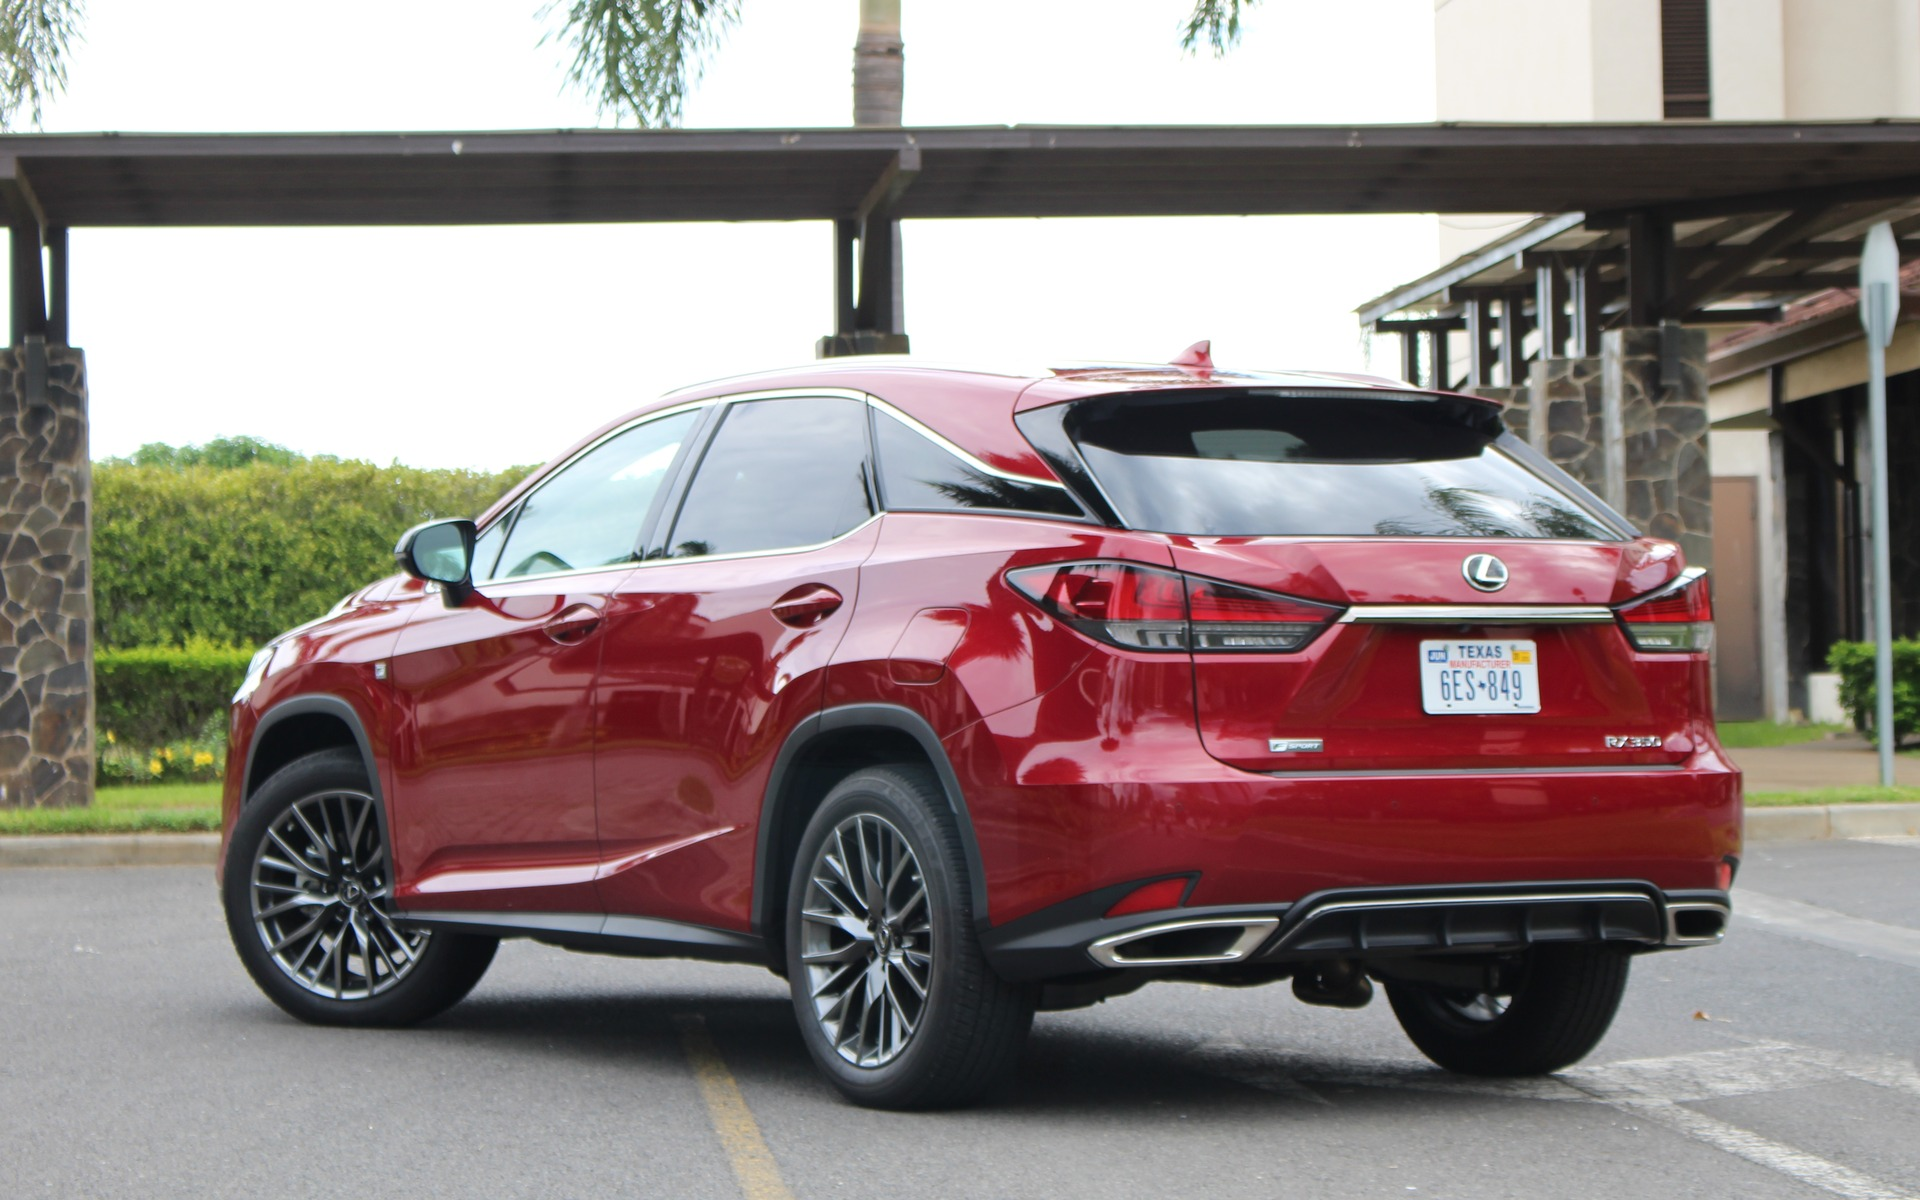 2020 Lexus RX: Minor Changes to Stay in the Game - The Car Guide